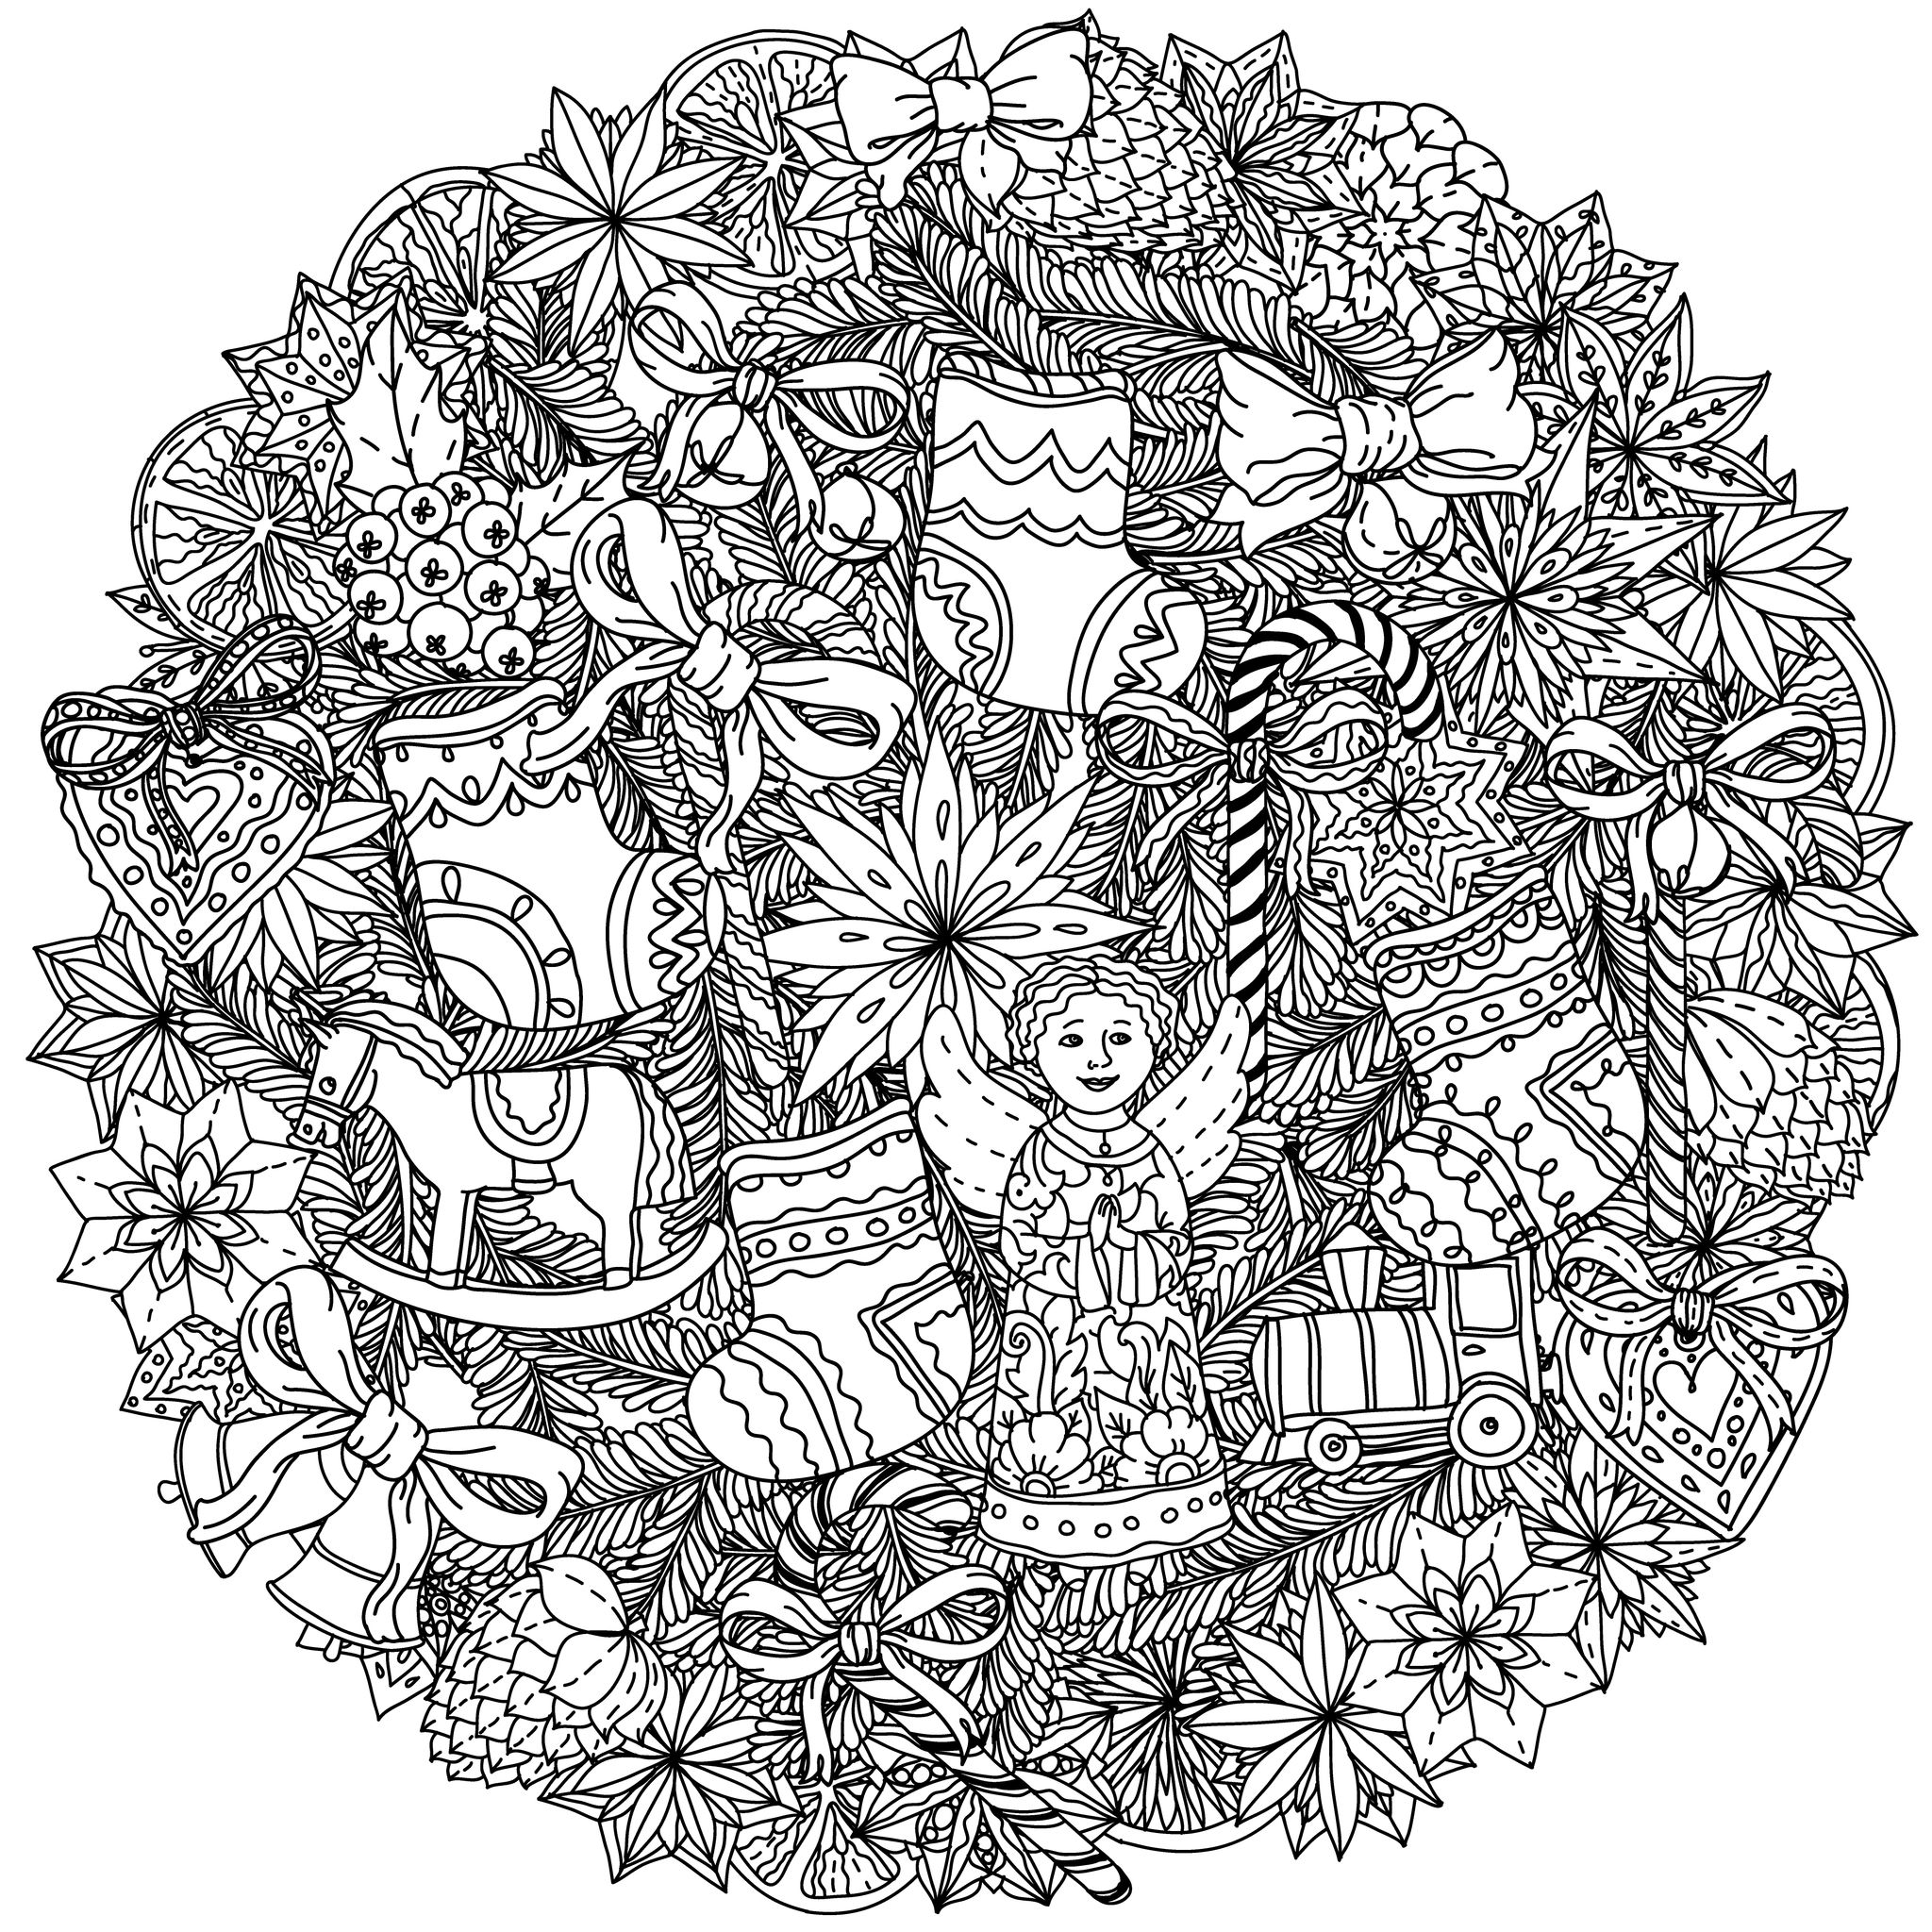 49525227 - christmas wreath with decorative items, black and white . the best for your design, textiles, posters, coloring book | A partir de la galerie : Noel